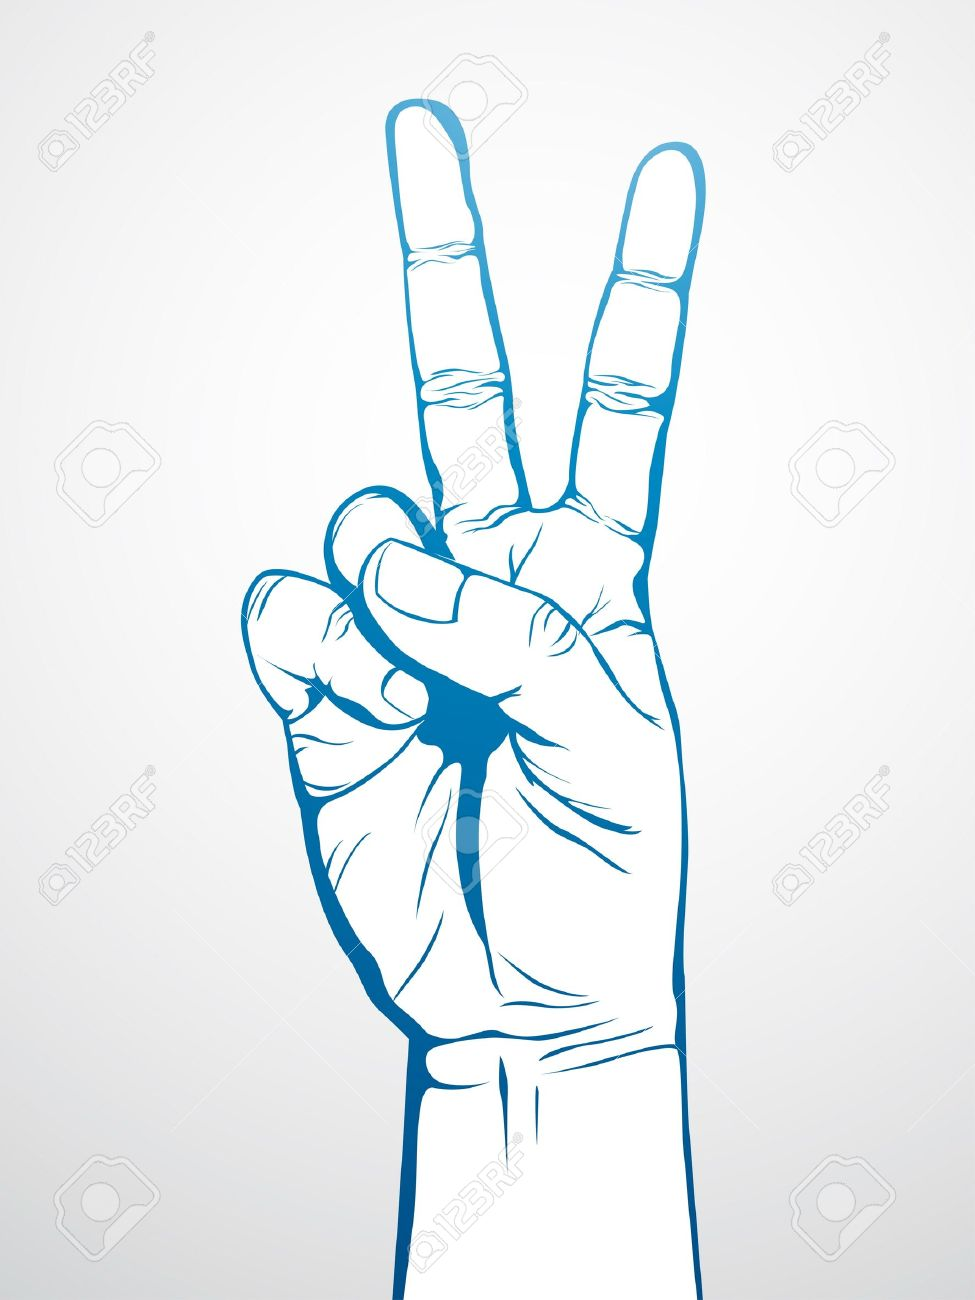 975x1300 Peace Sign Royalty Free Cliparts, Vectors, And Stock Illustration